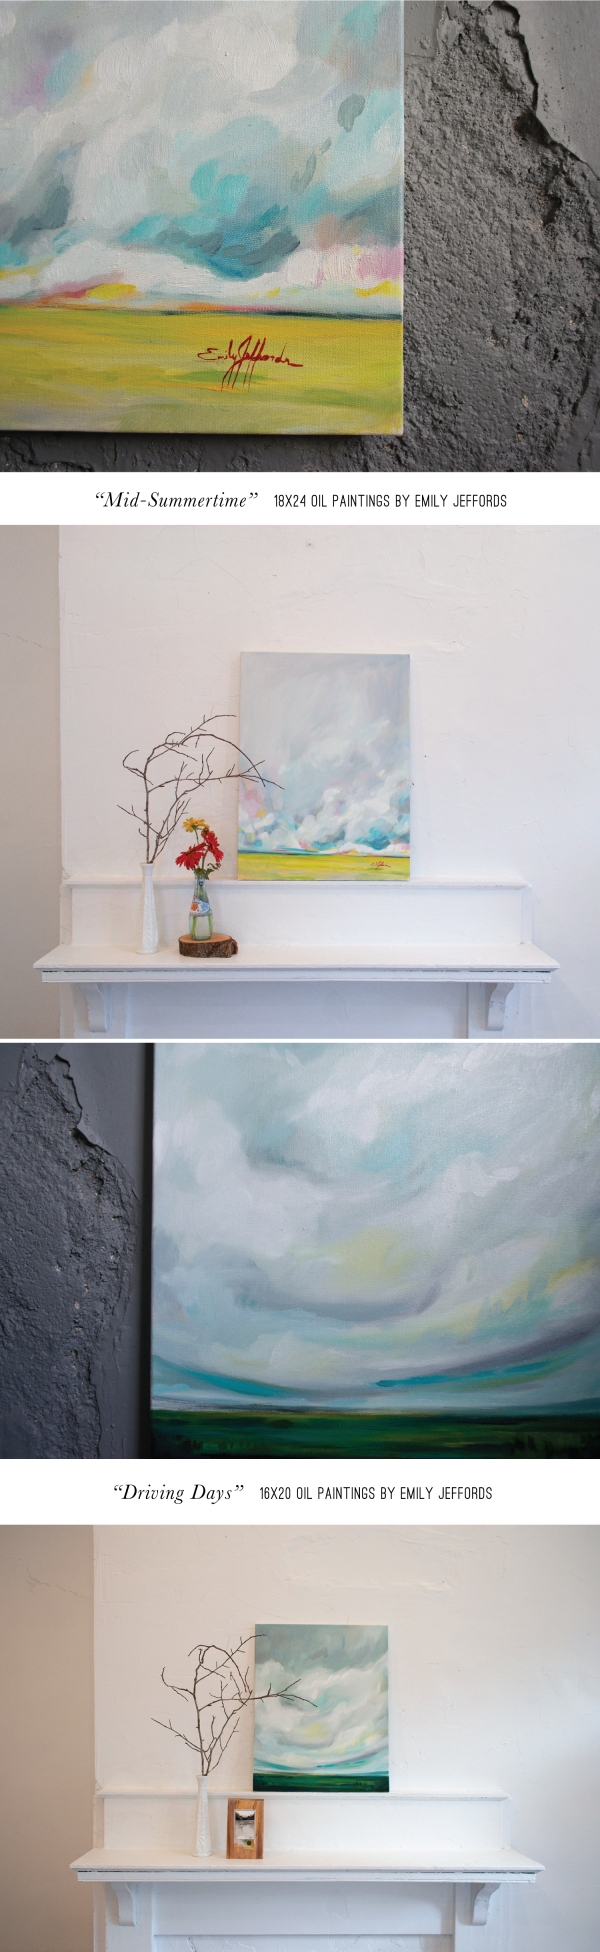 New Original oil landscape paintings by Emily Jeffords